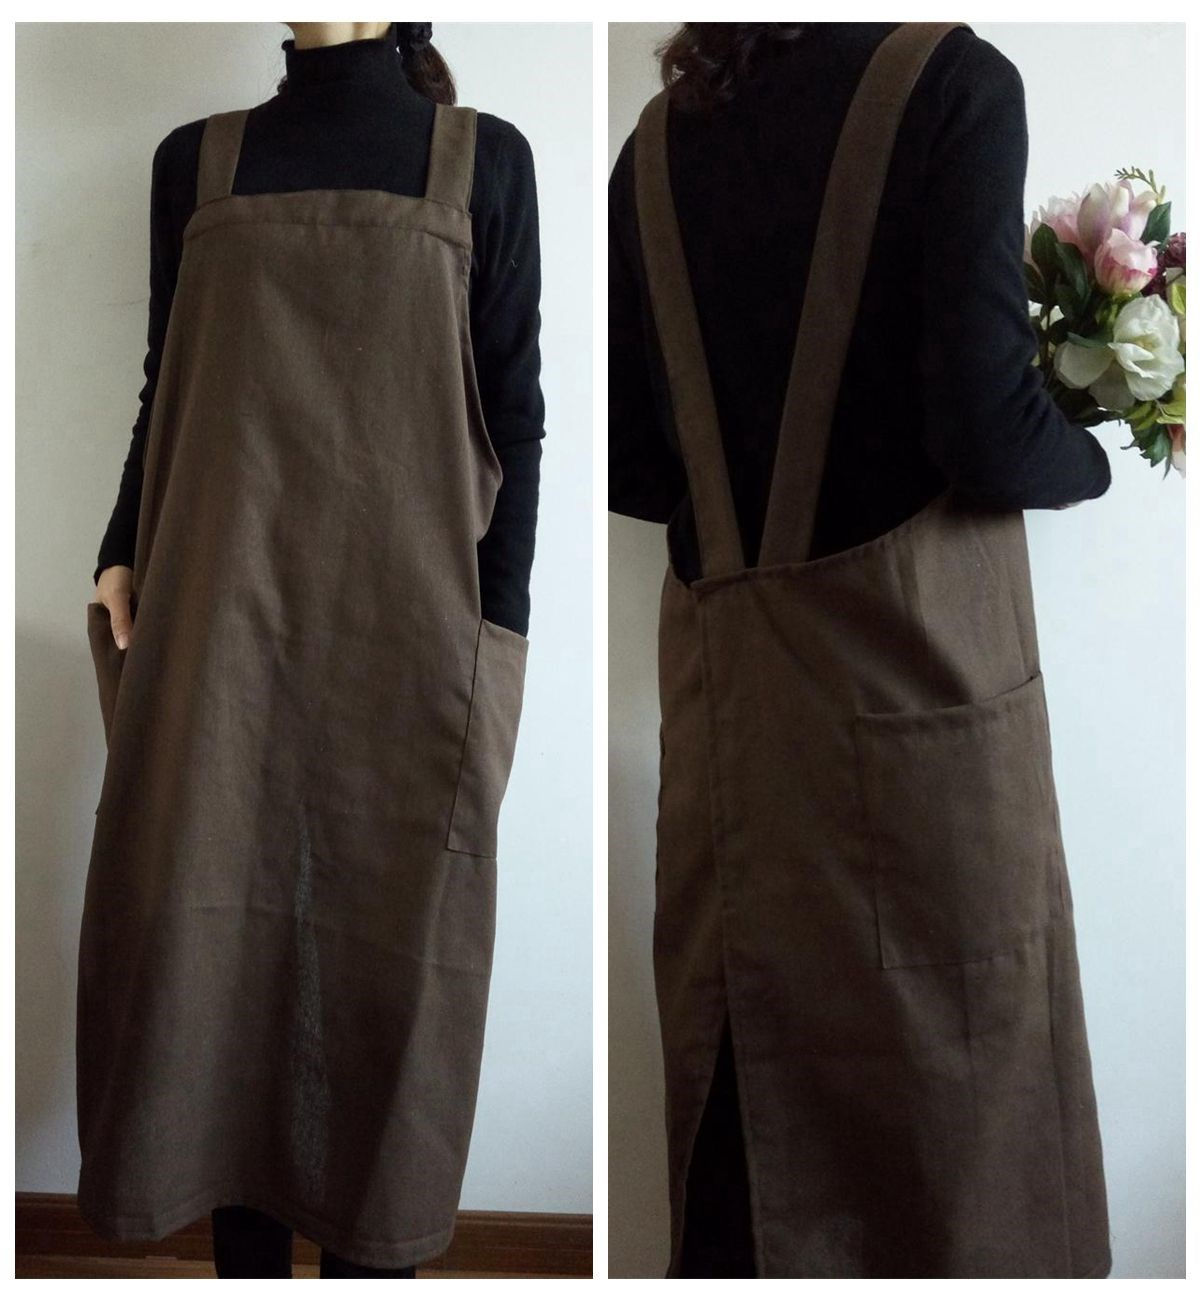 Apron 2021 new long smock womens spring and autumn long work clothes are wearing clothes for cooking in the kitchen